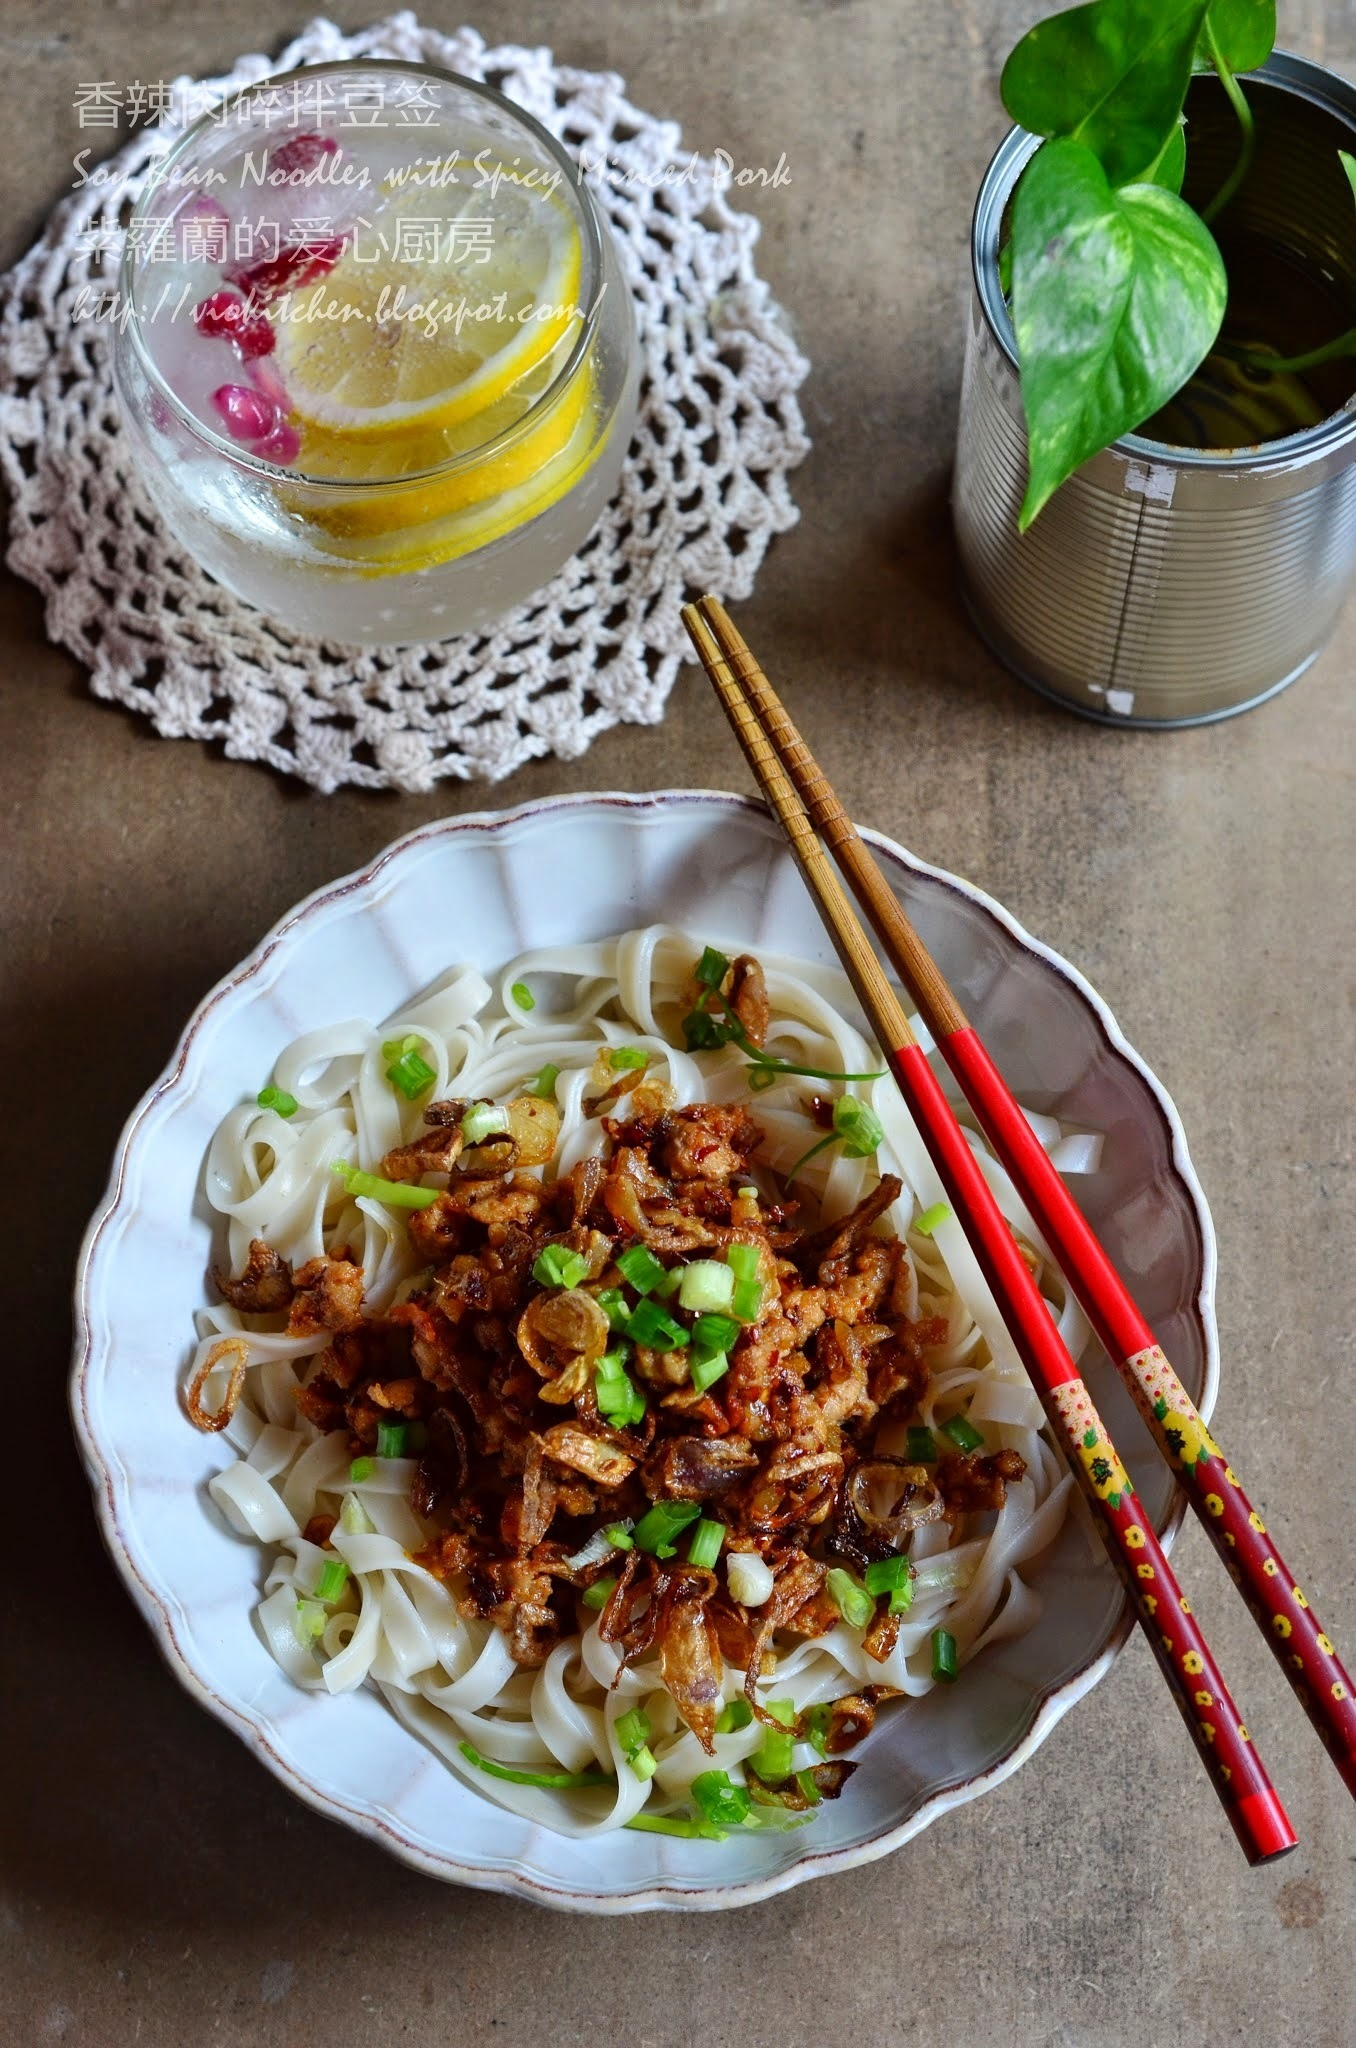 Soy Bean Noodles #1 - 香辣肉碎拌豆签 Soy Bean Noodles with Spicy Minced Pork